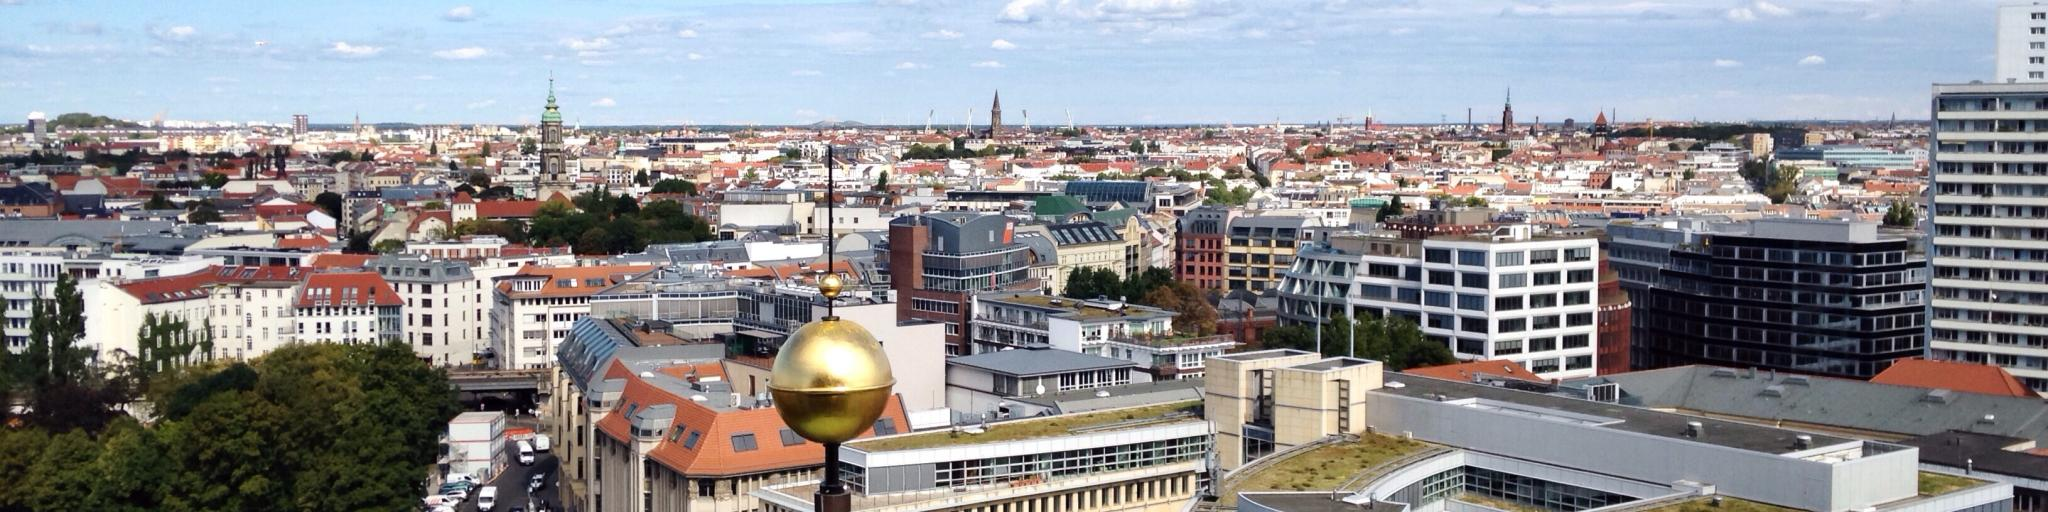 View of Berlin from the top of Berlin Cathedral on Museum Island in the city's Mitte district